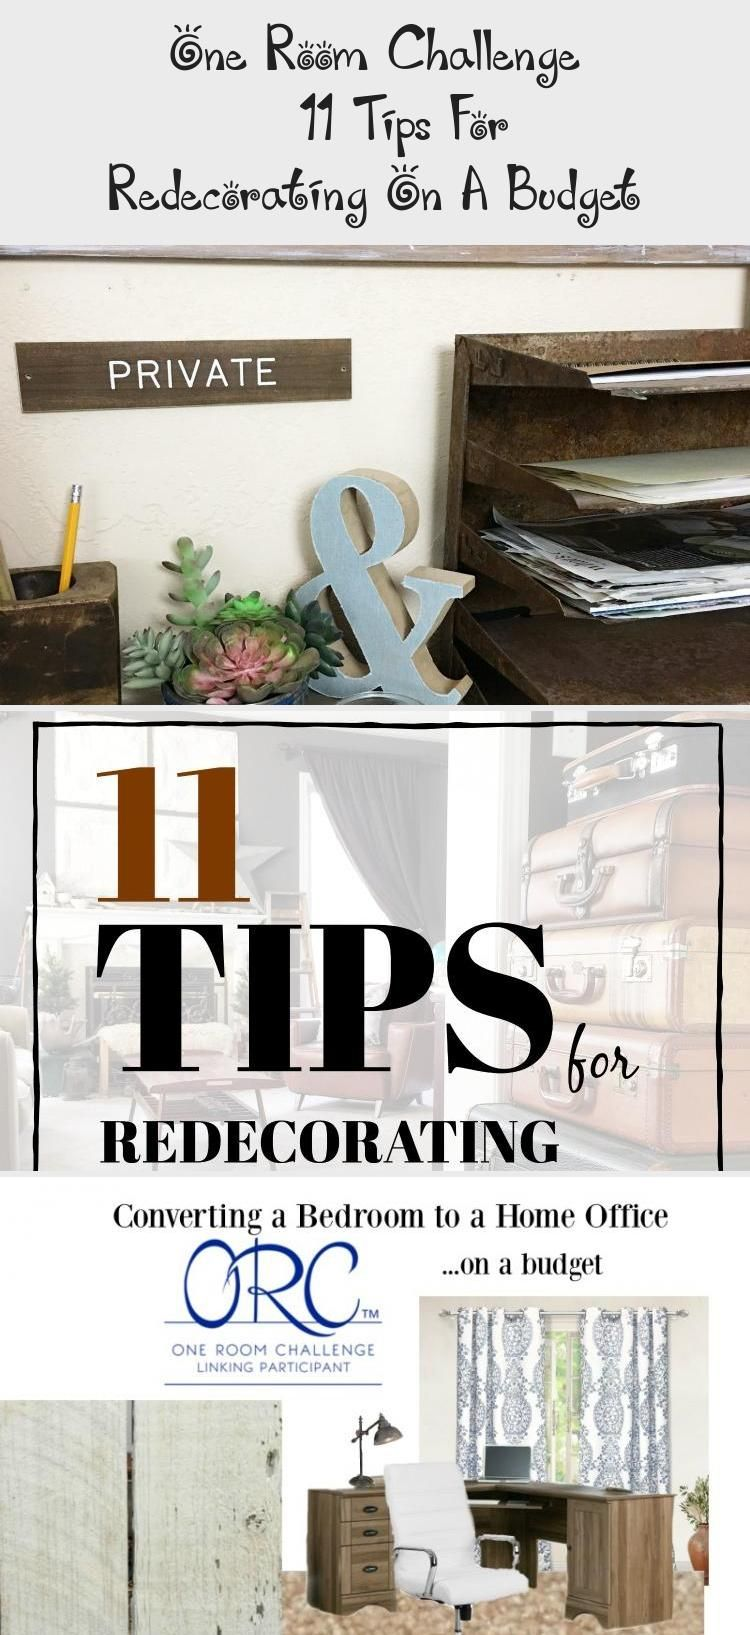 How to redecorate on a budget.  Here are some tips.  Find more on salvagesisterandmister.com #HomeDecorDIYVideosApartment #HomeDecorDIYVideosCheap #HomeDecorDIYVideosProjects #HomeDecorDIYVideosLivingRoom #HomeDecorDIYVideosIdeas